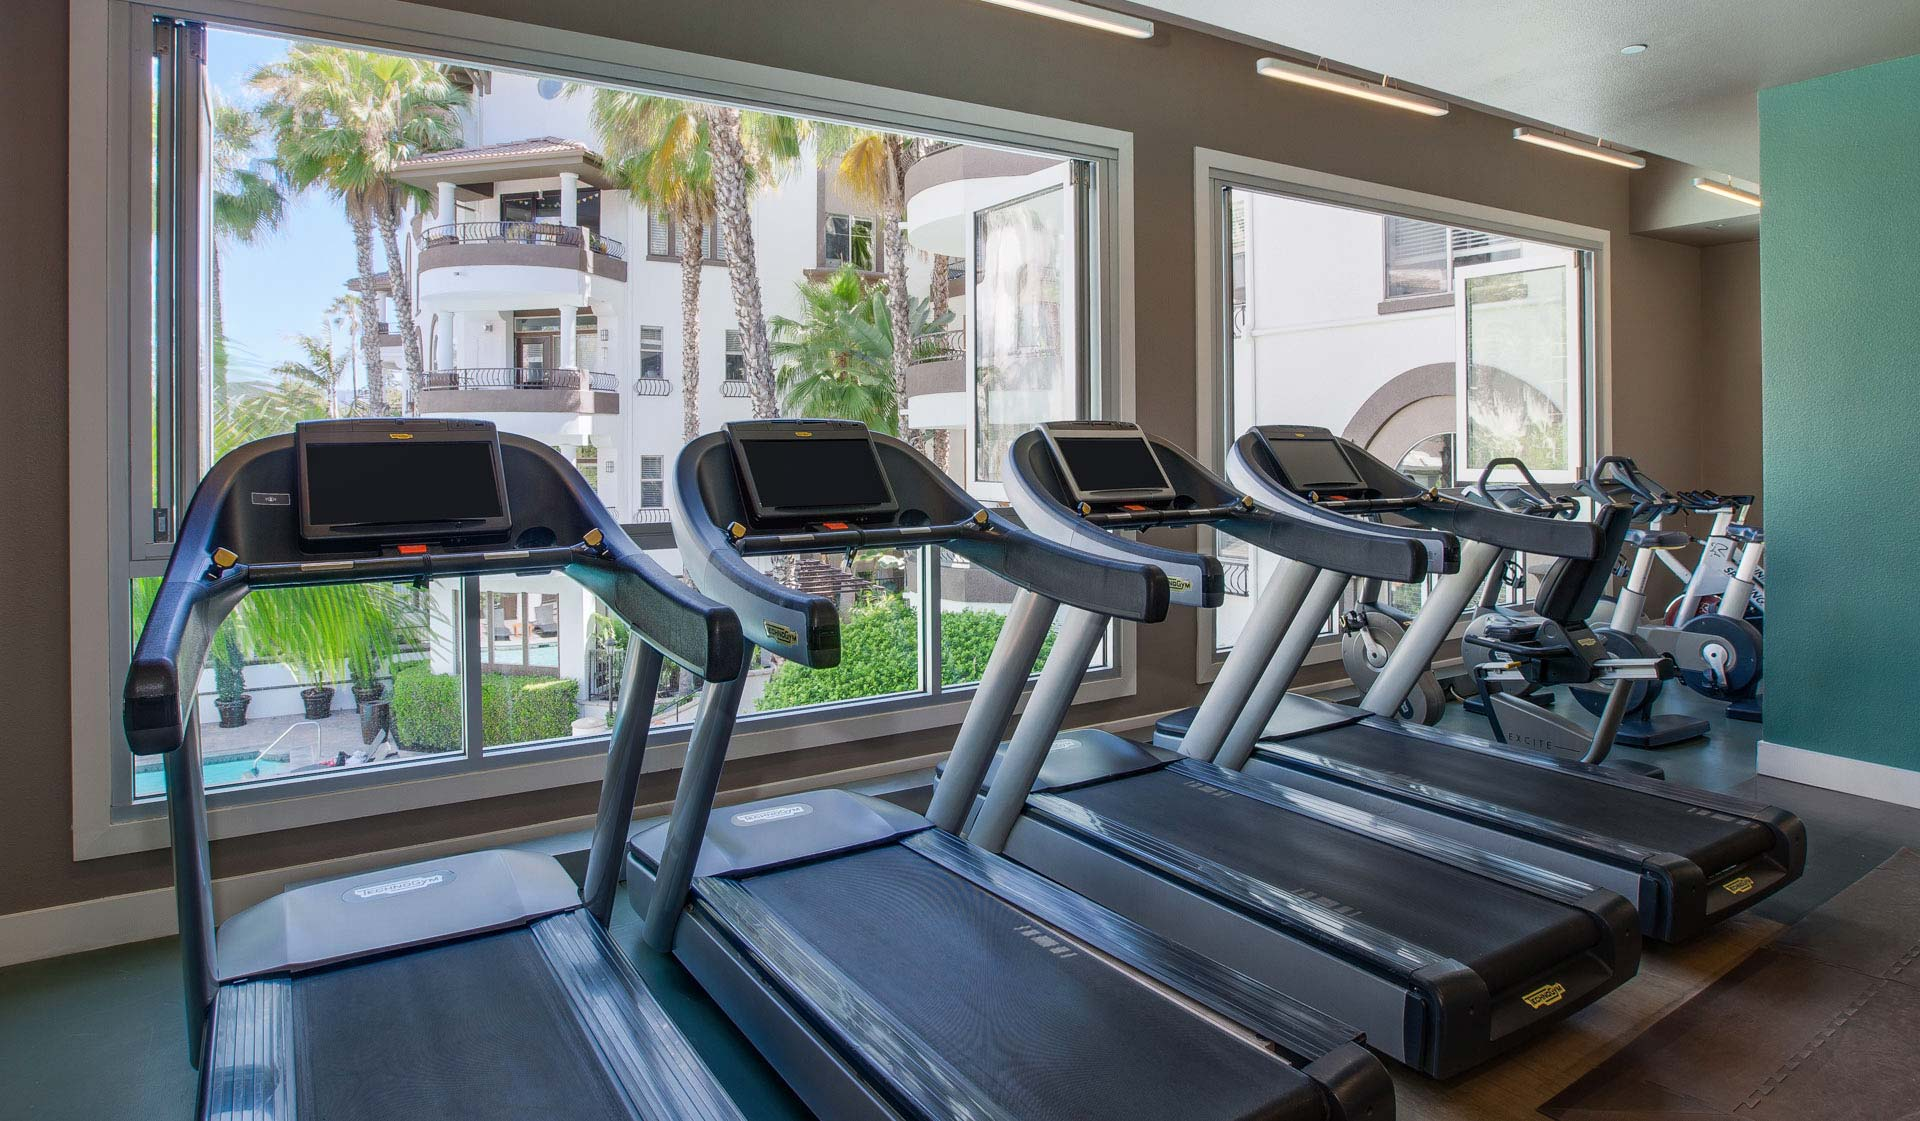 Palazzo West  - Los Angeles, CA - Treadmills in Gym